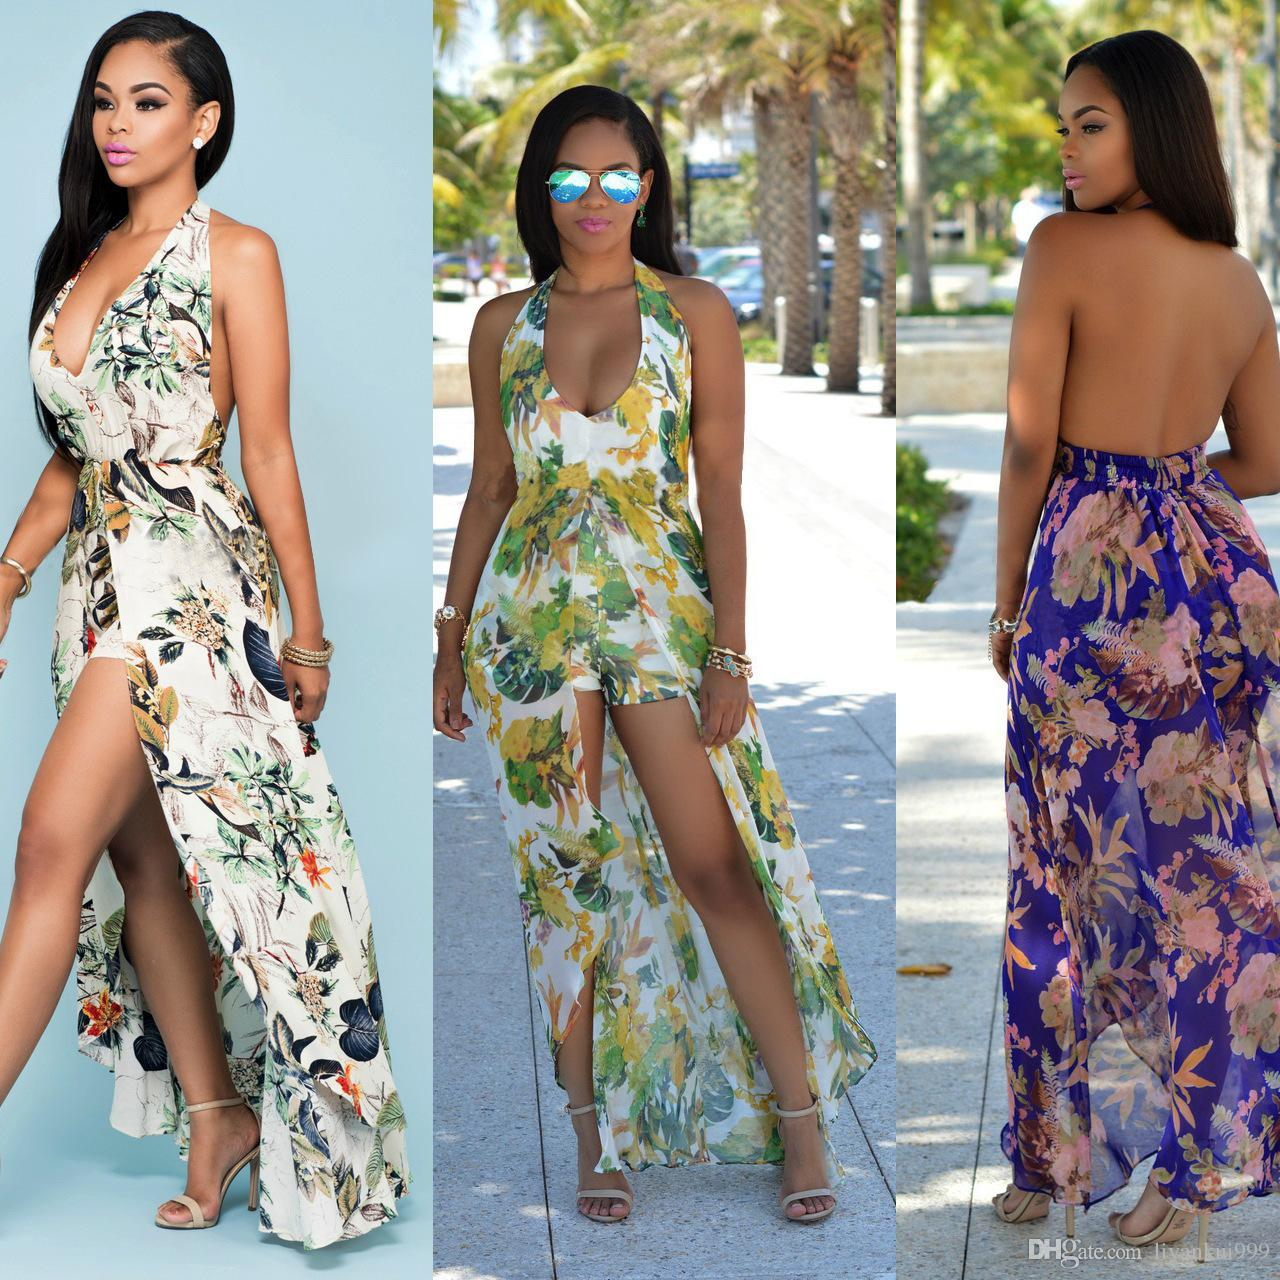 2018 Summer New Bohemian Rompers For Women Halter Neck Plus Size Printed Hanging neck beach skirt Chiffon Sexy Backless Split Dresses